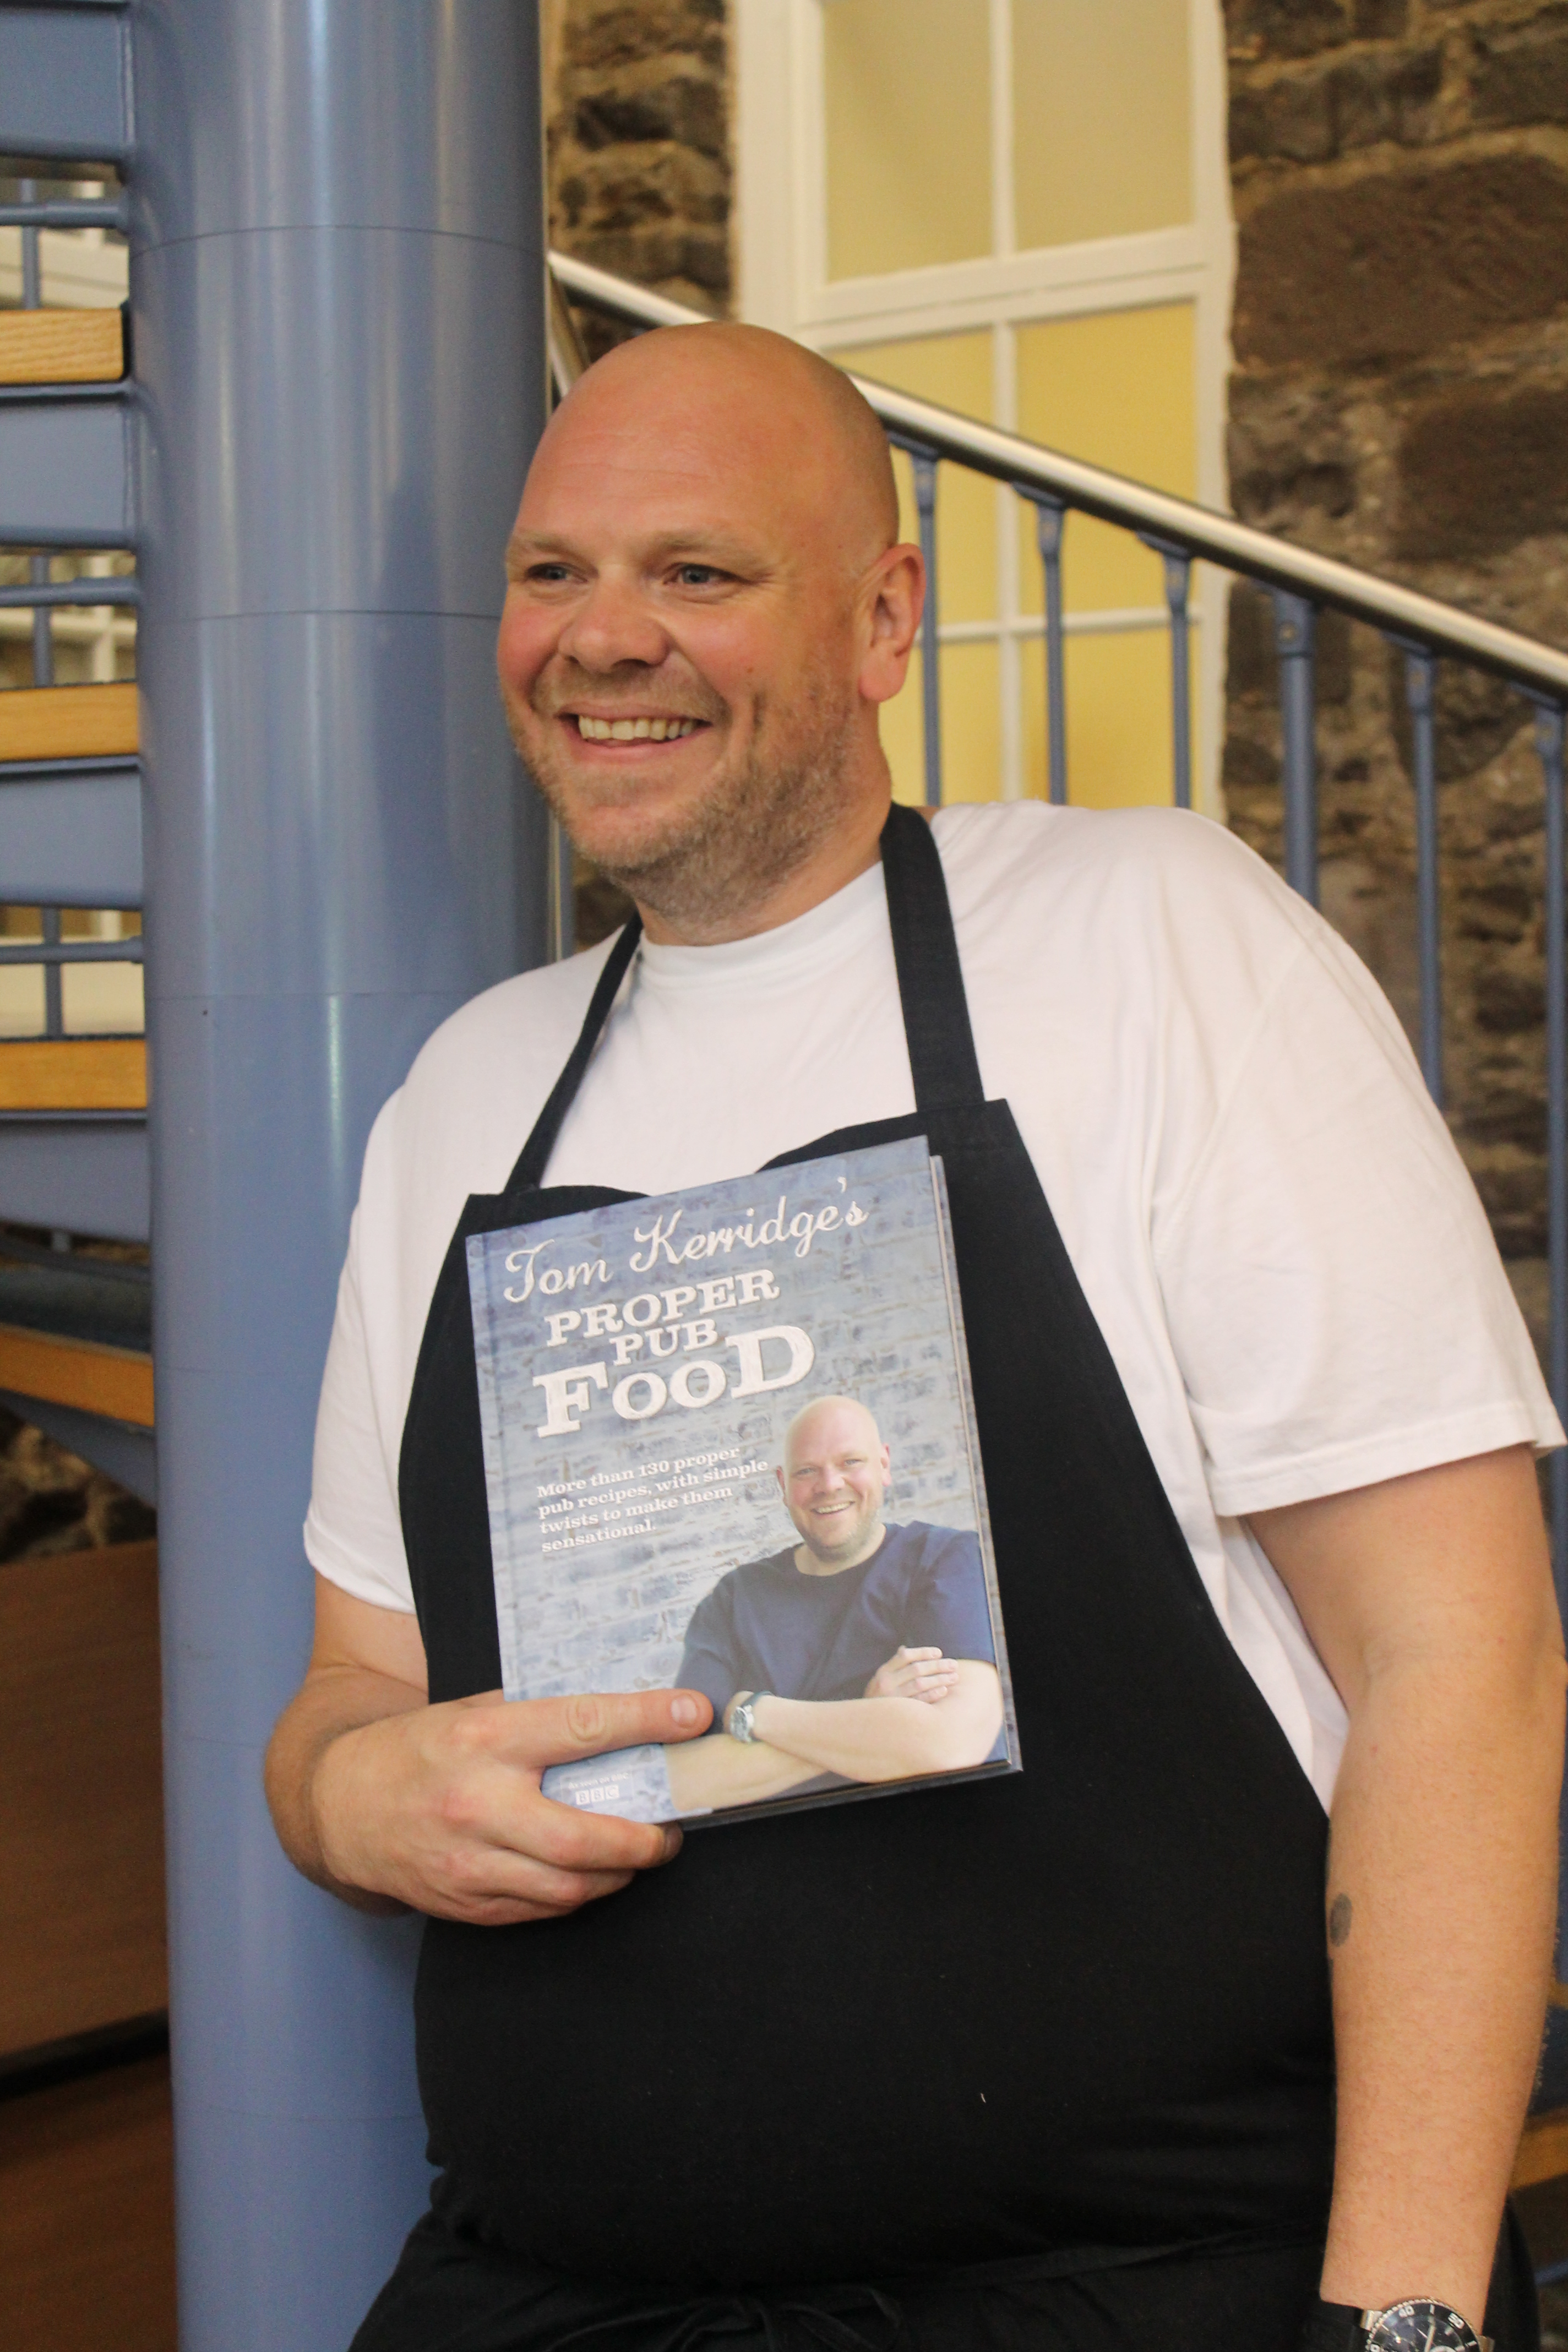 Tom Kerridge Proper Pub Food Sweden